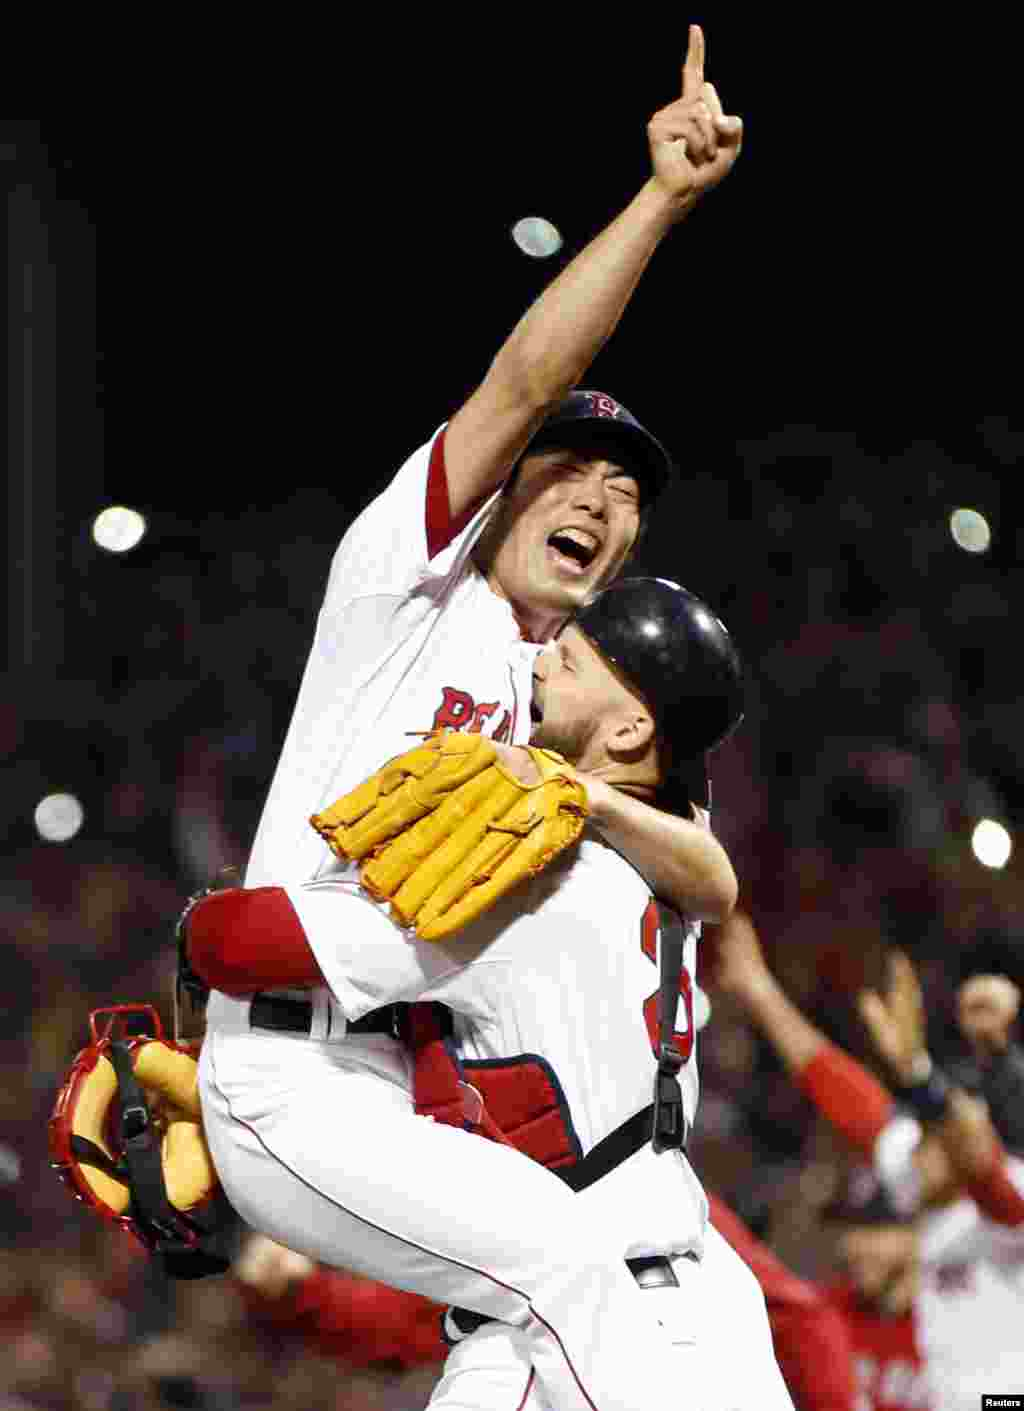 Oct 30, 2013; Boston, MA, USA; Boston Red Sox relief pitcher Koji Uehara (19) reacts with catcher David Ross (3) after defeating the St. Louis Cardinals in game six of the MLB baseball World Series at Fenway Park. Red Sox won 6-1. Mandatory Credit: Greg M